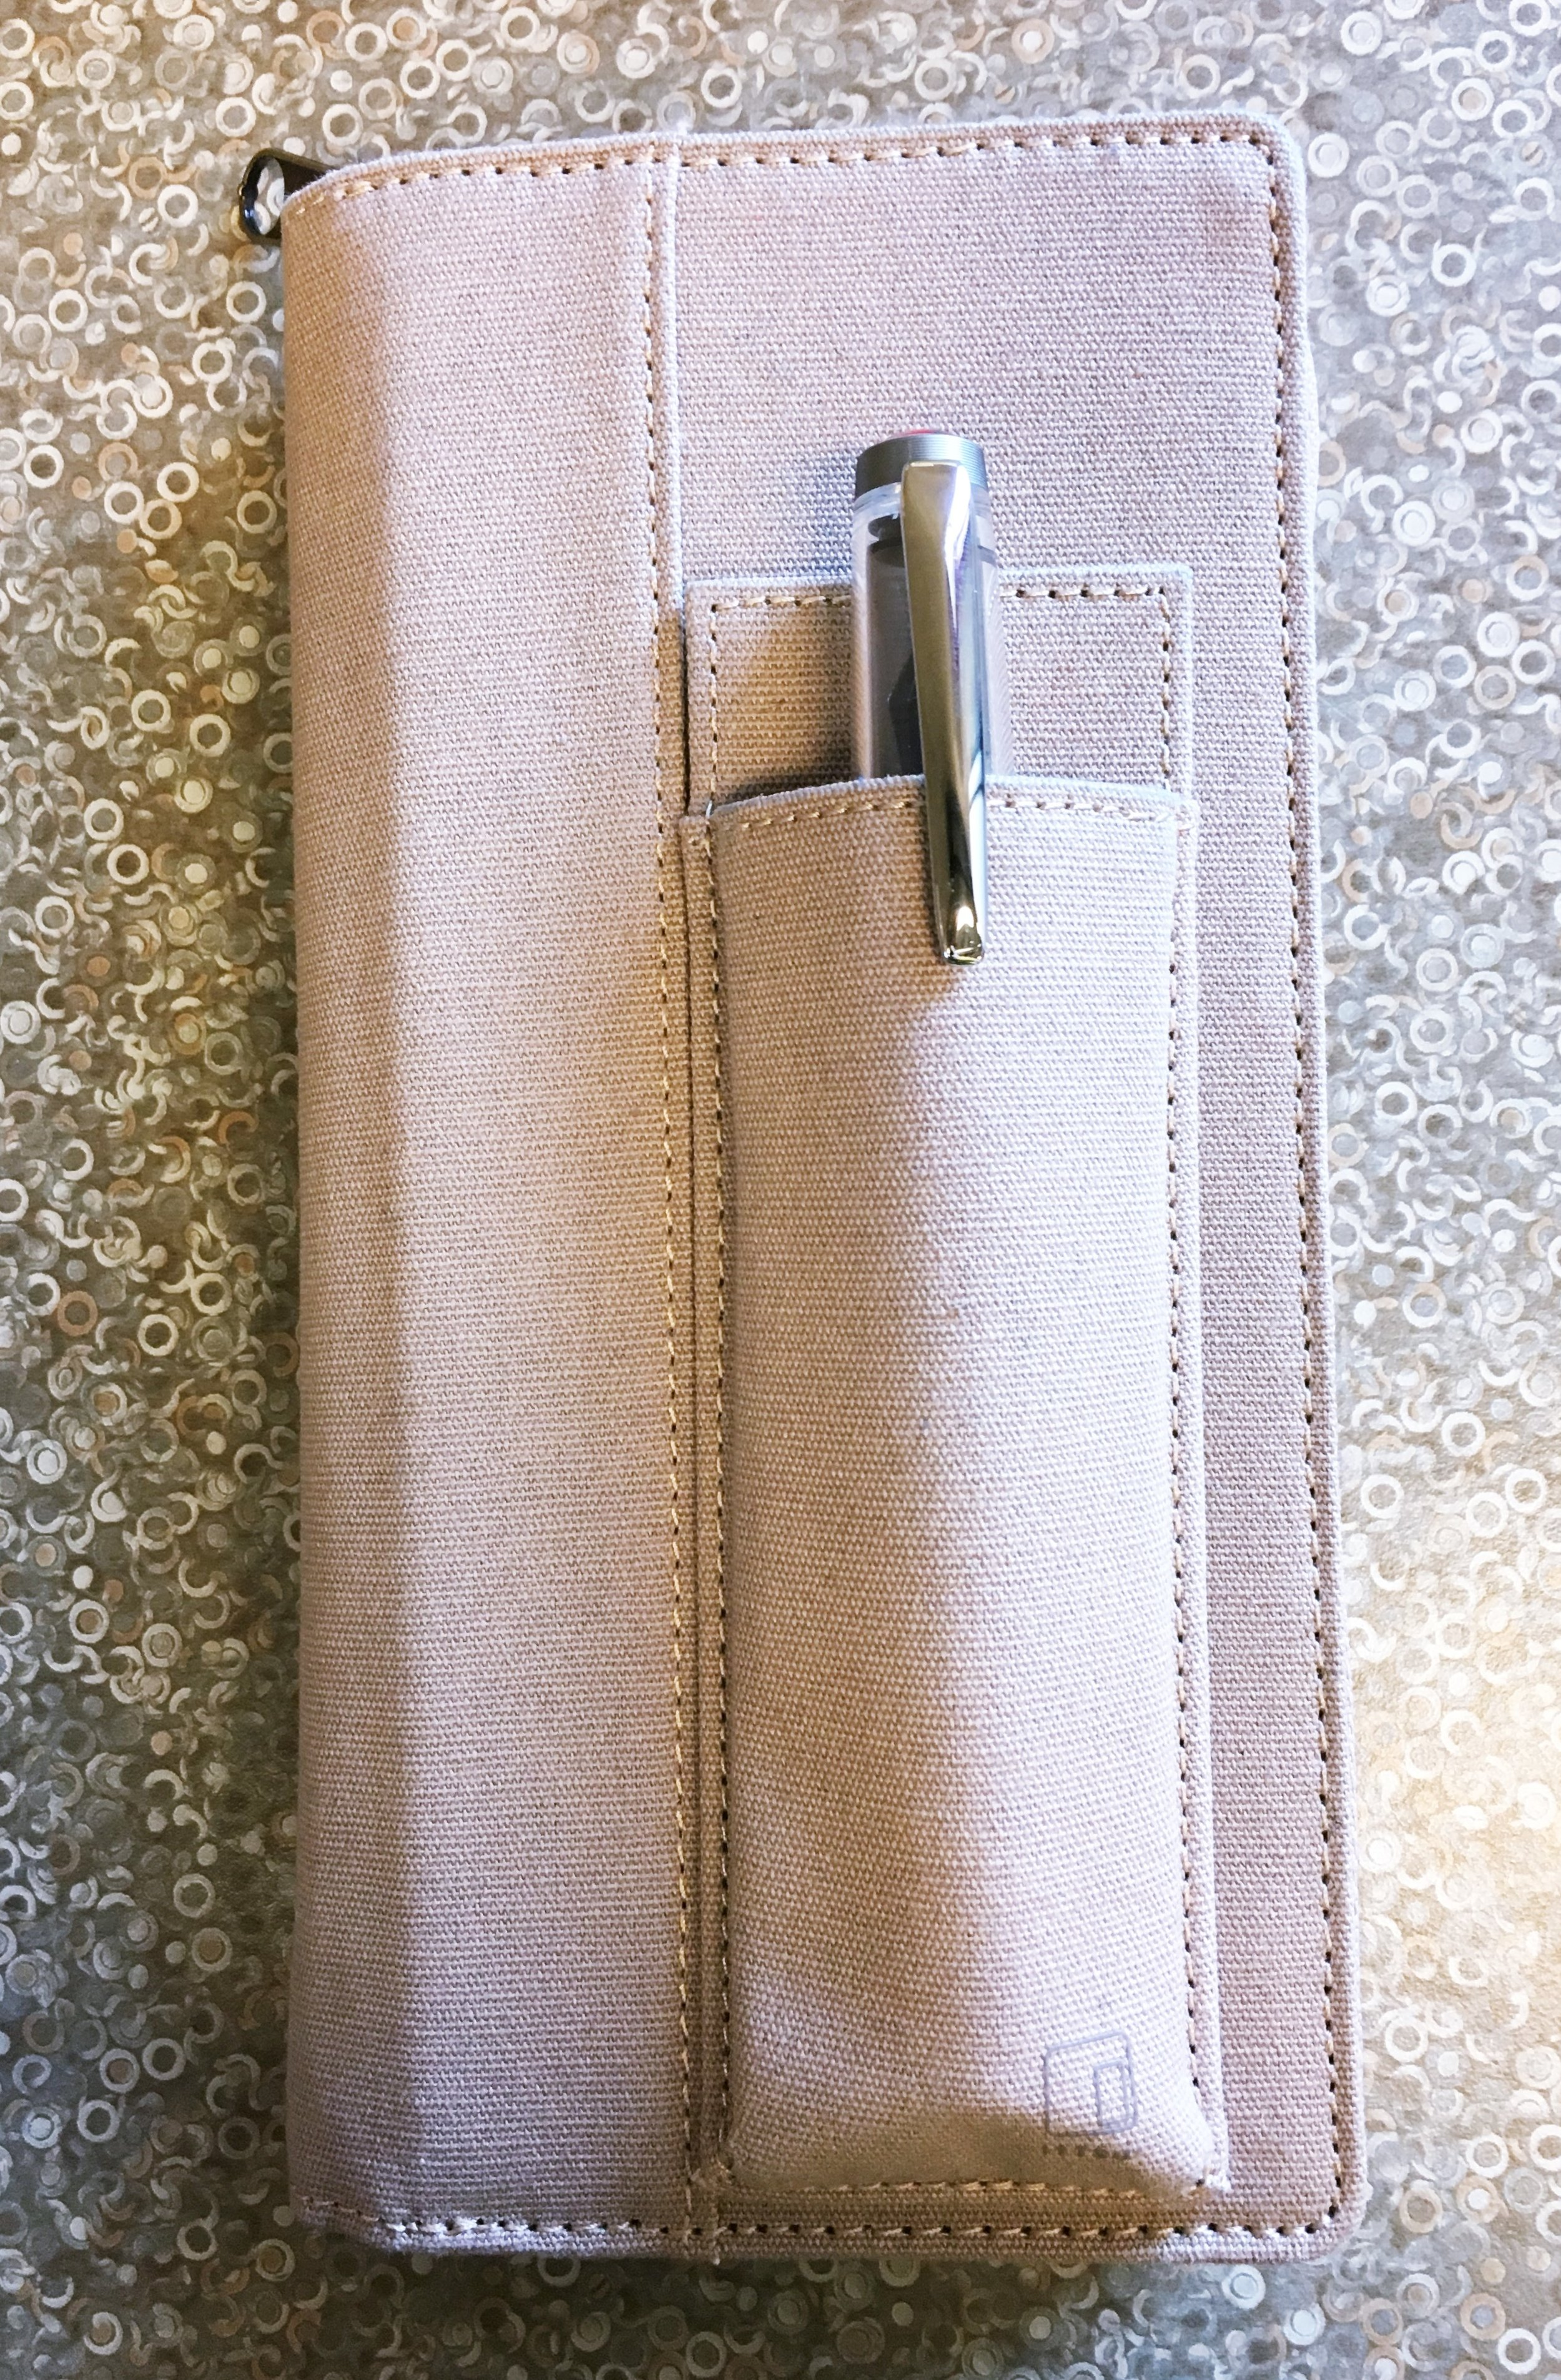 King Jim Ittsui Pen Case Review